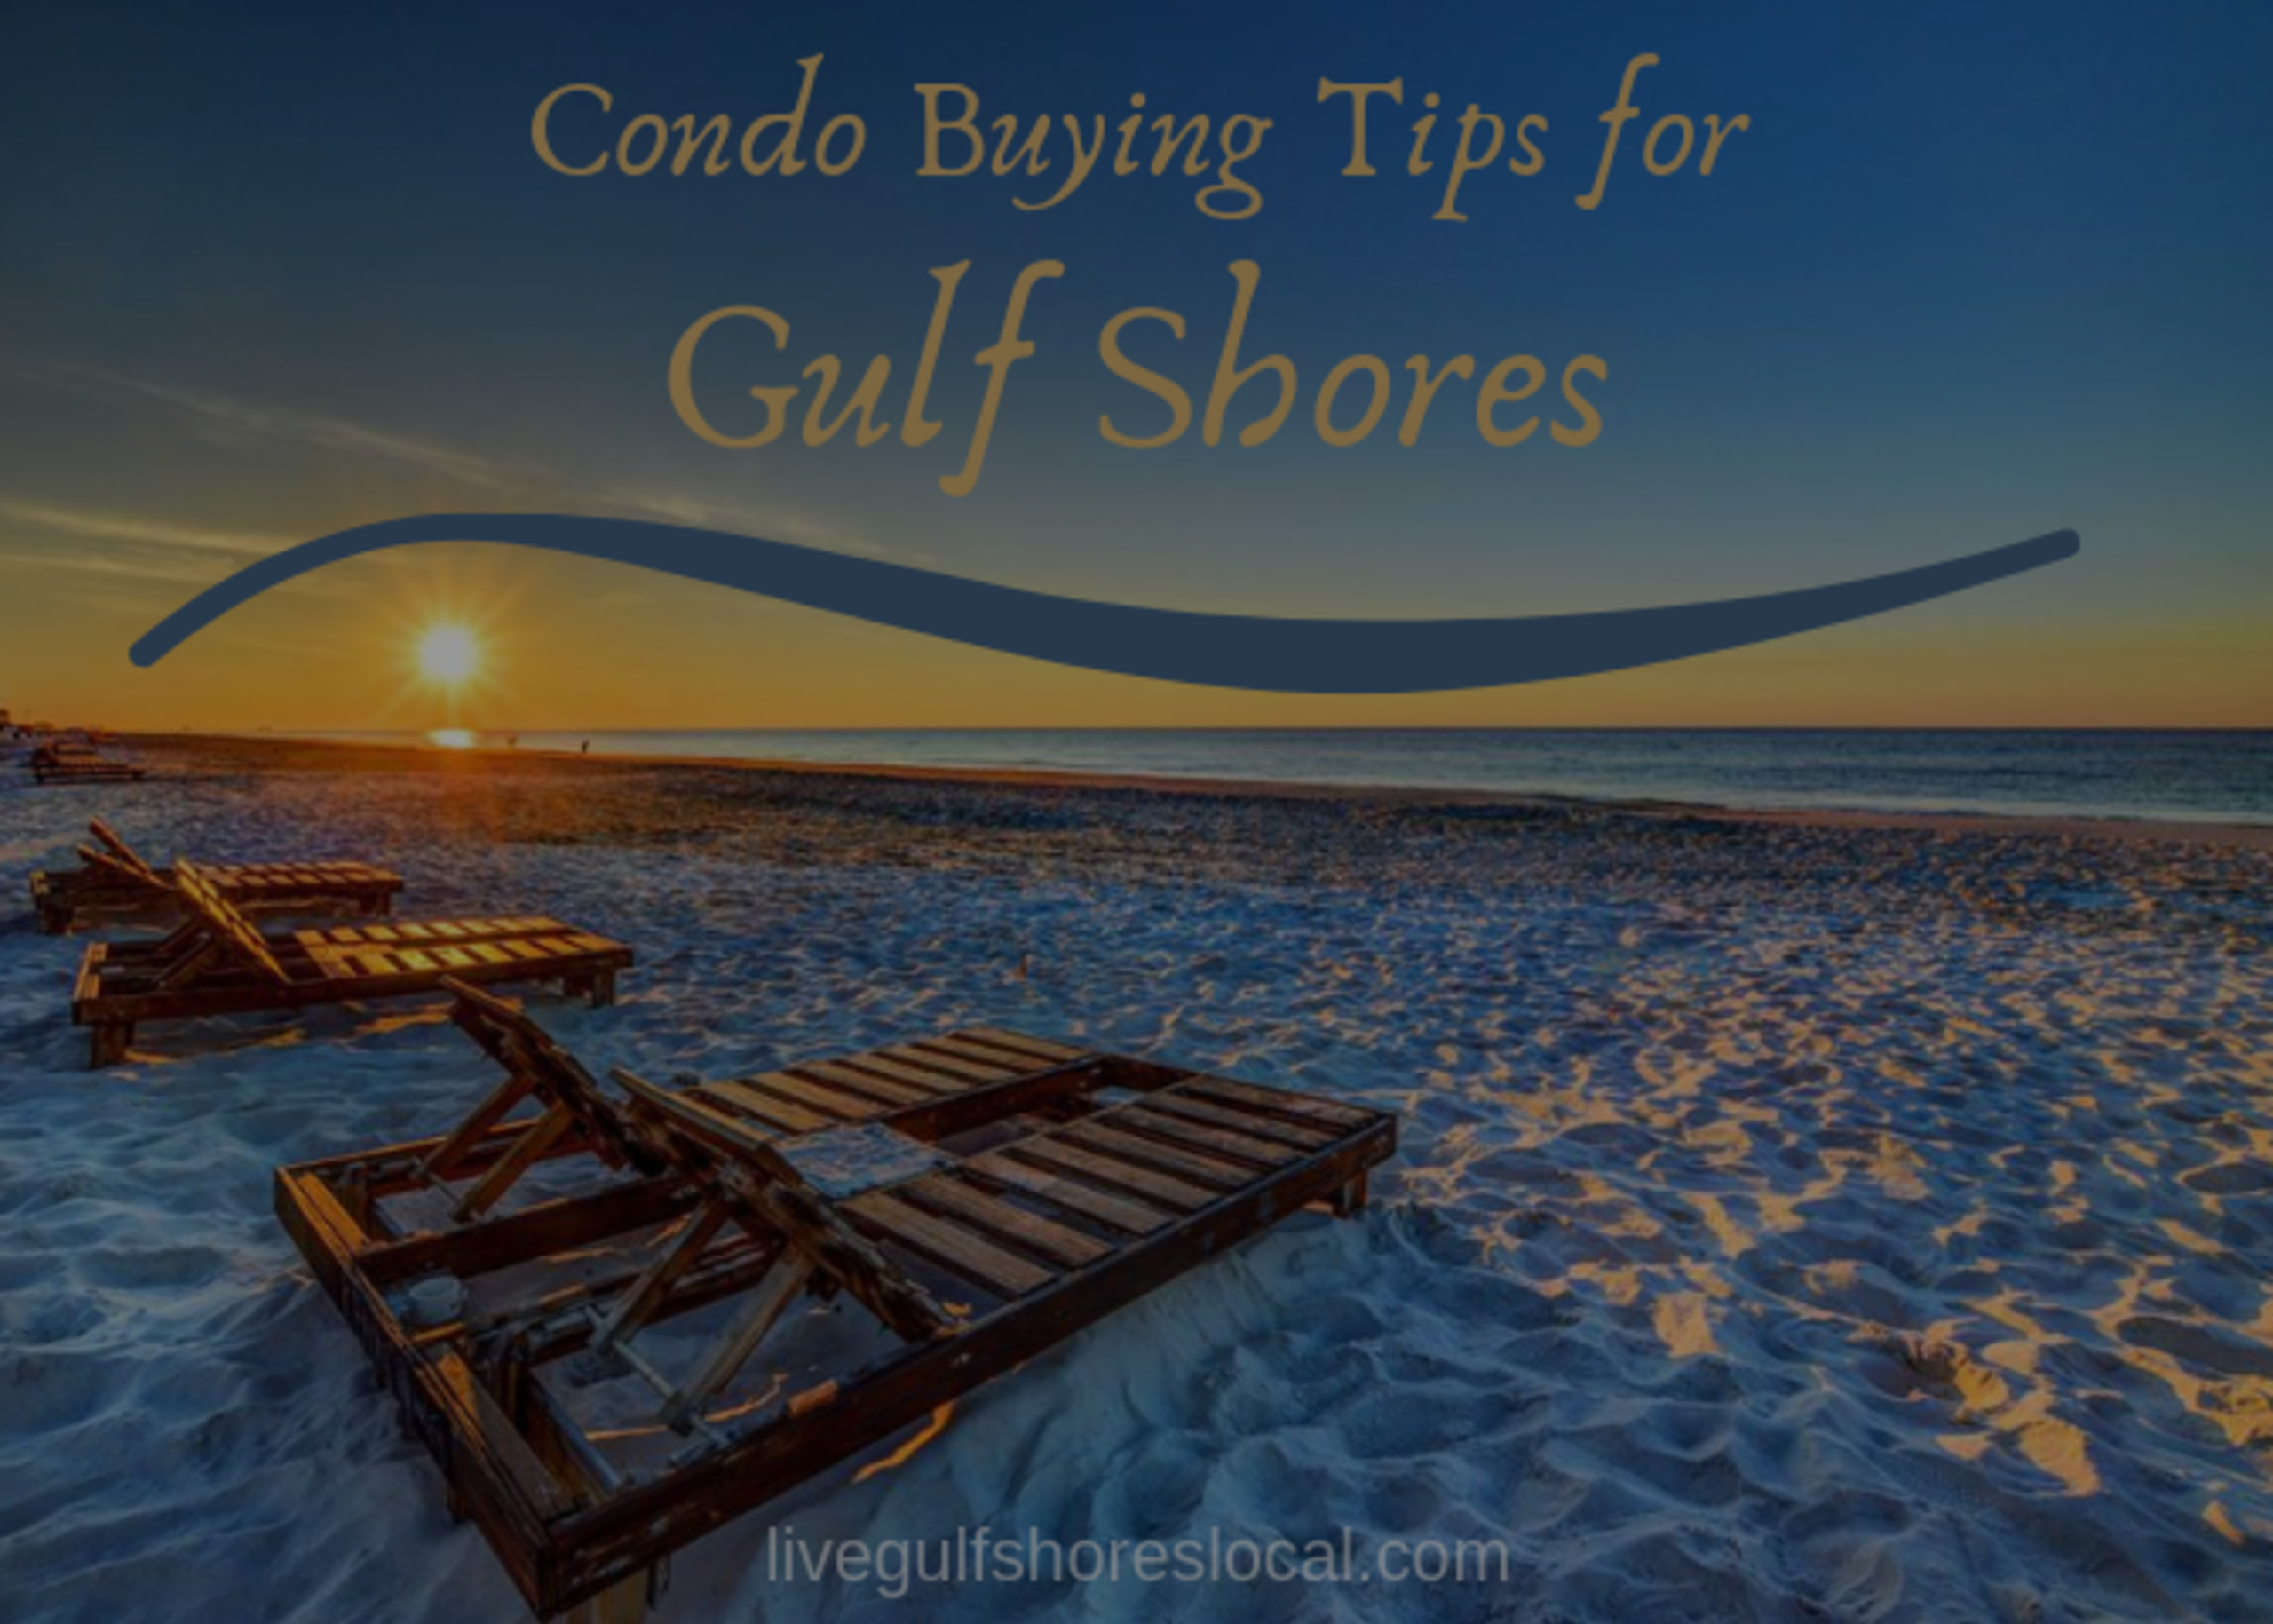 Condo Buying Tip #1 – Know the Difference in Ownership